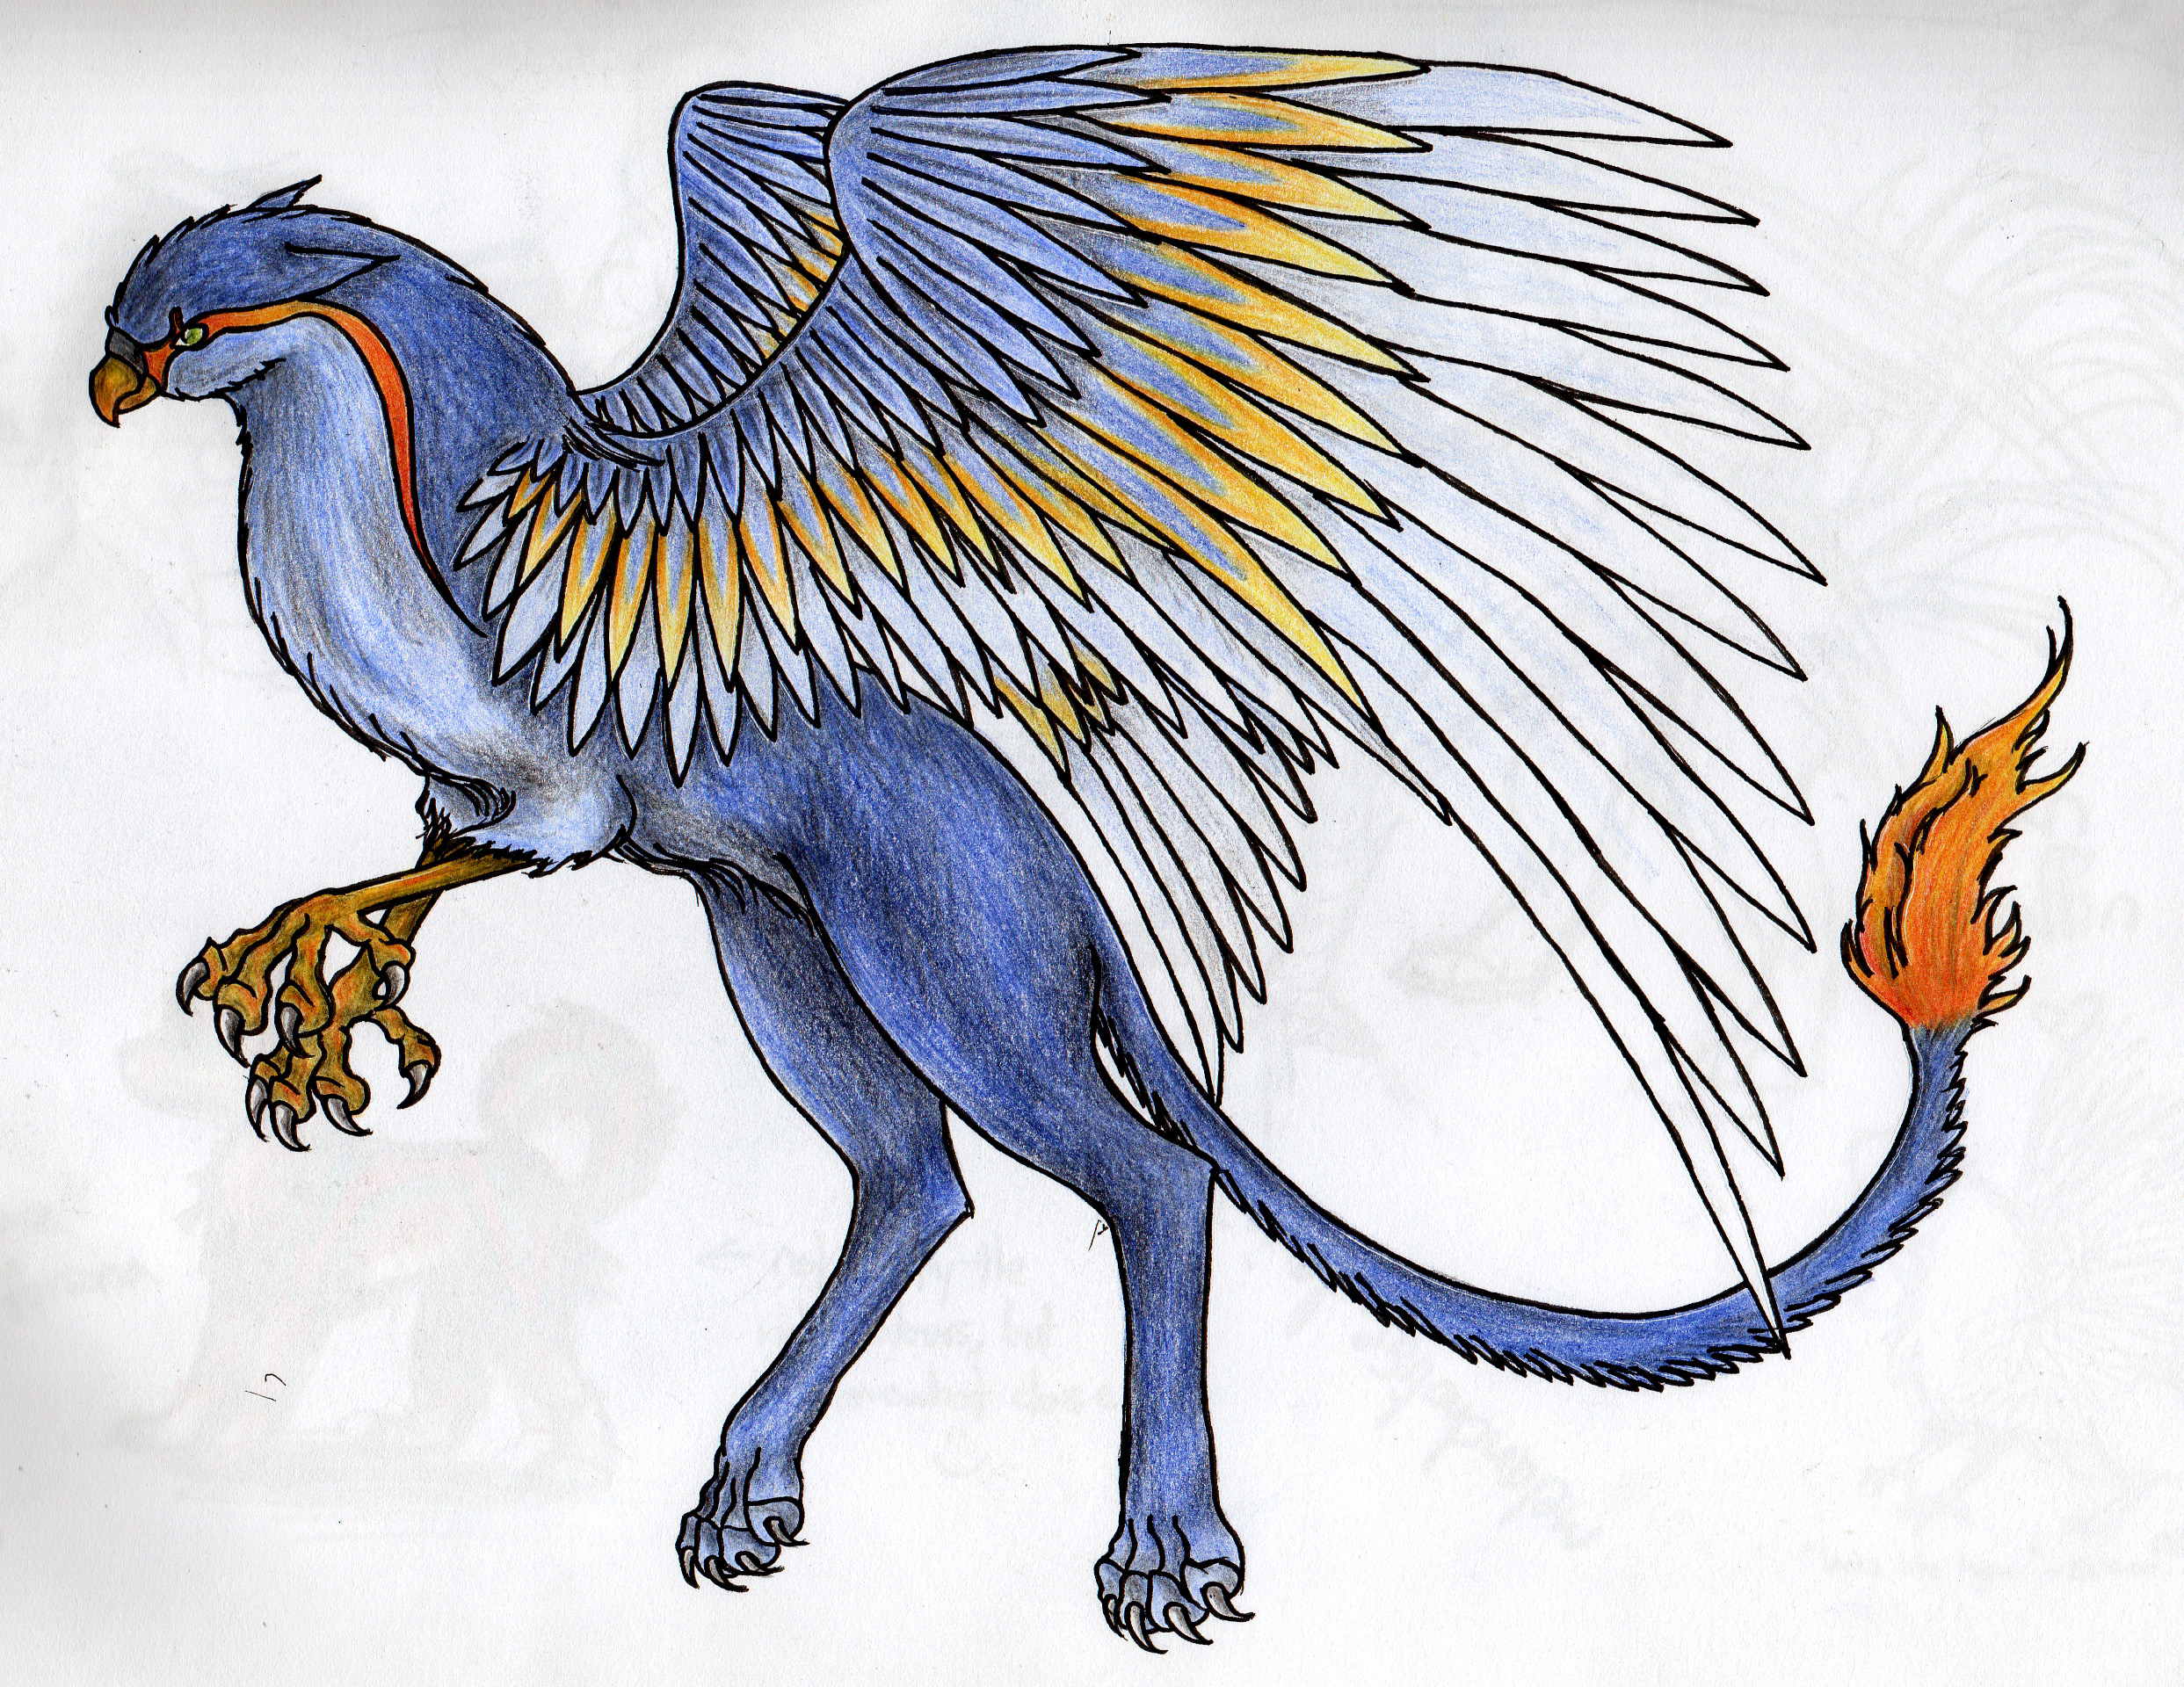 Blue griffin by creature love on deviantart - A picture of a griffin the creature ...